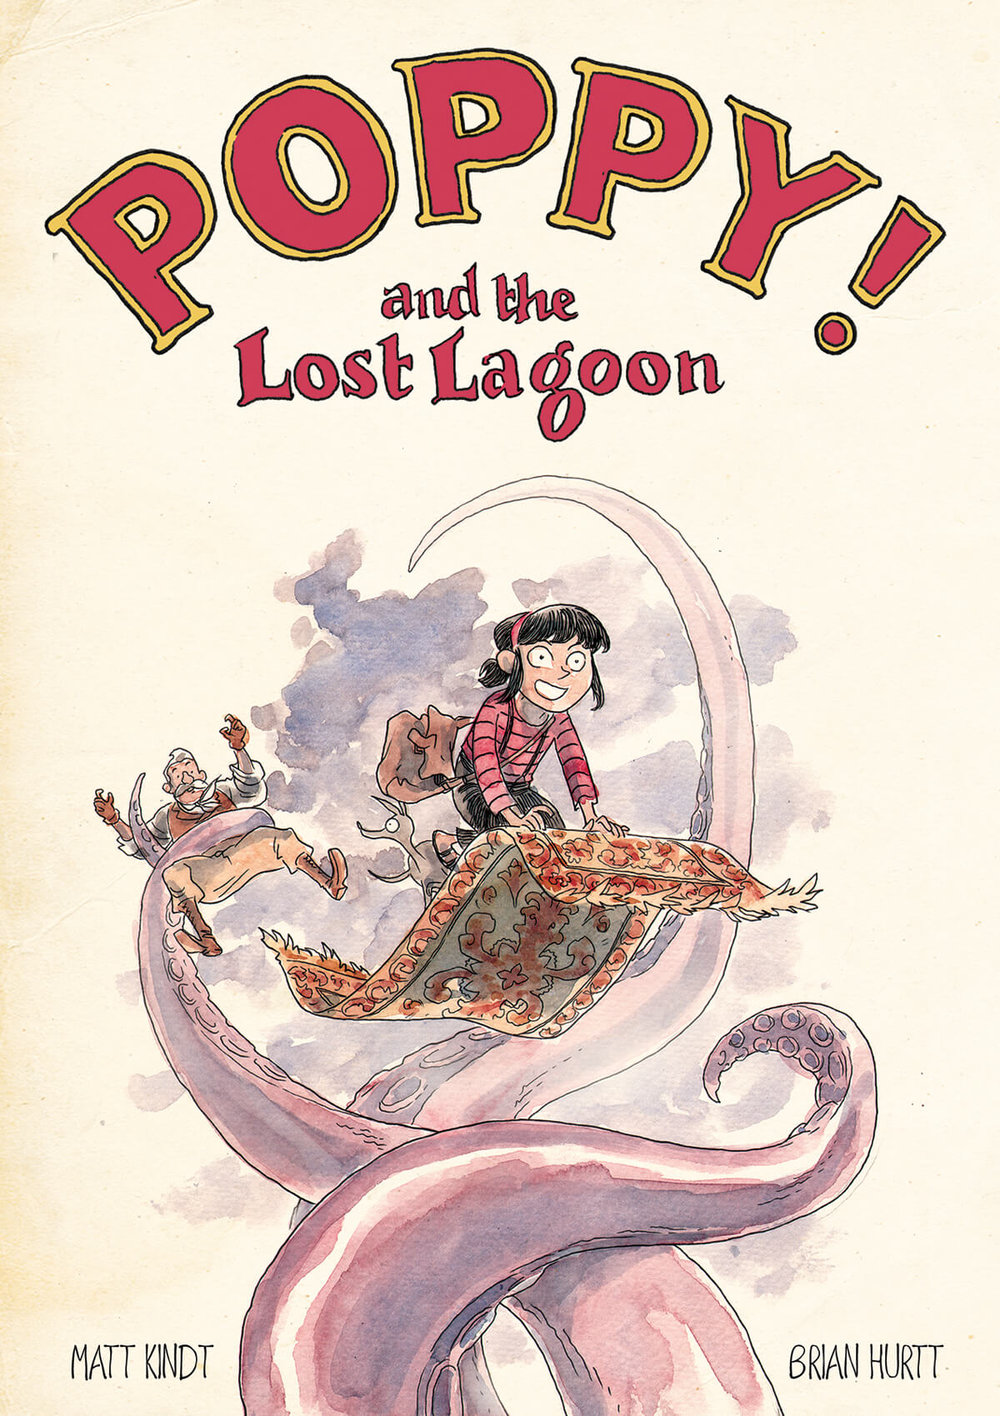 Poppy and the Lost Lagoon by Matt Kindt and Brian Hurtt